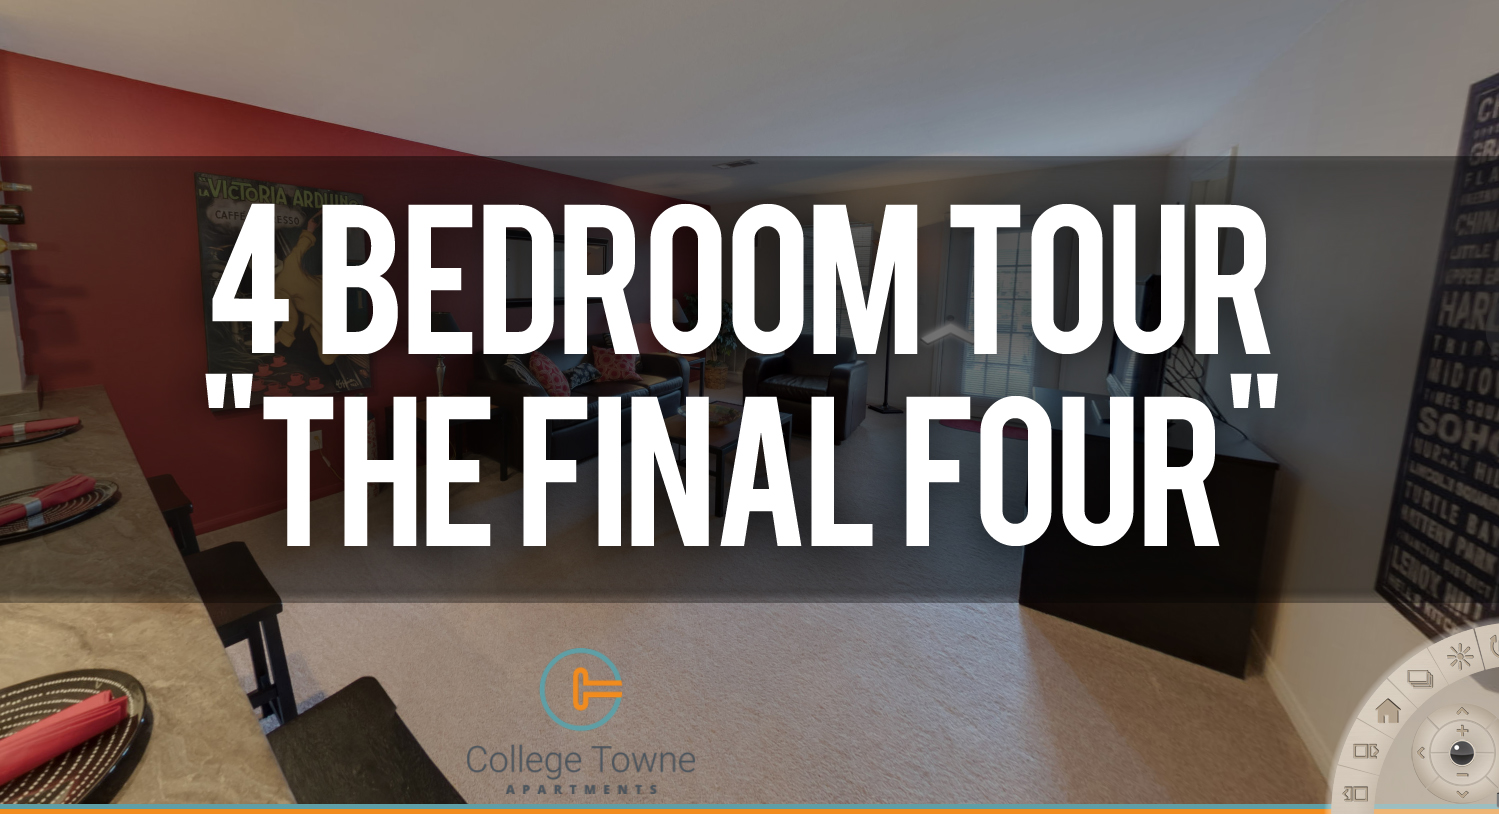 Virtual Tour of Final Four 4 bedroom floorplan at College Towne Apartments